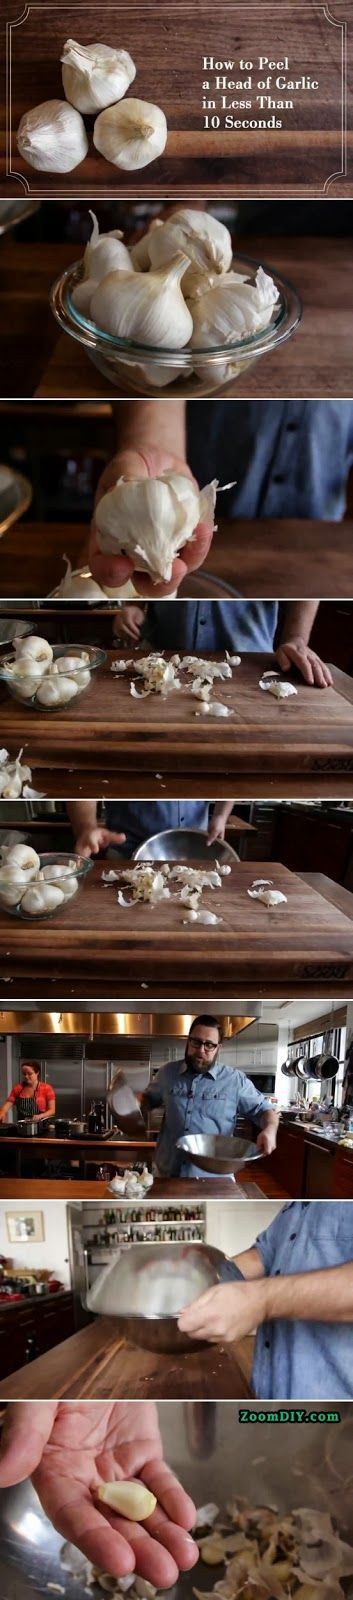 Garlic Peeling in 10 Seconds DIY